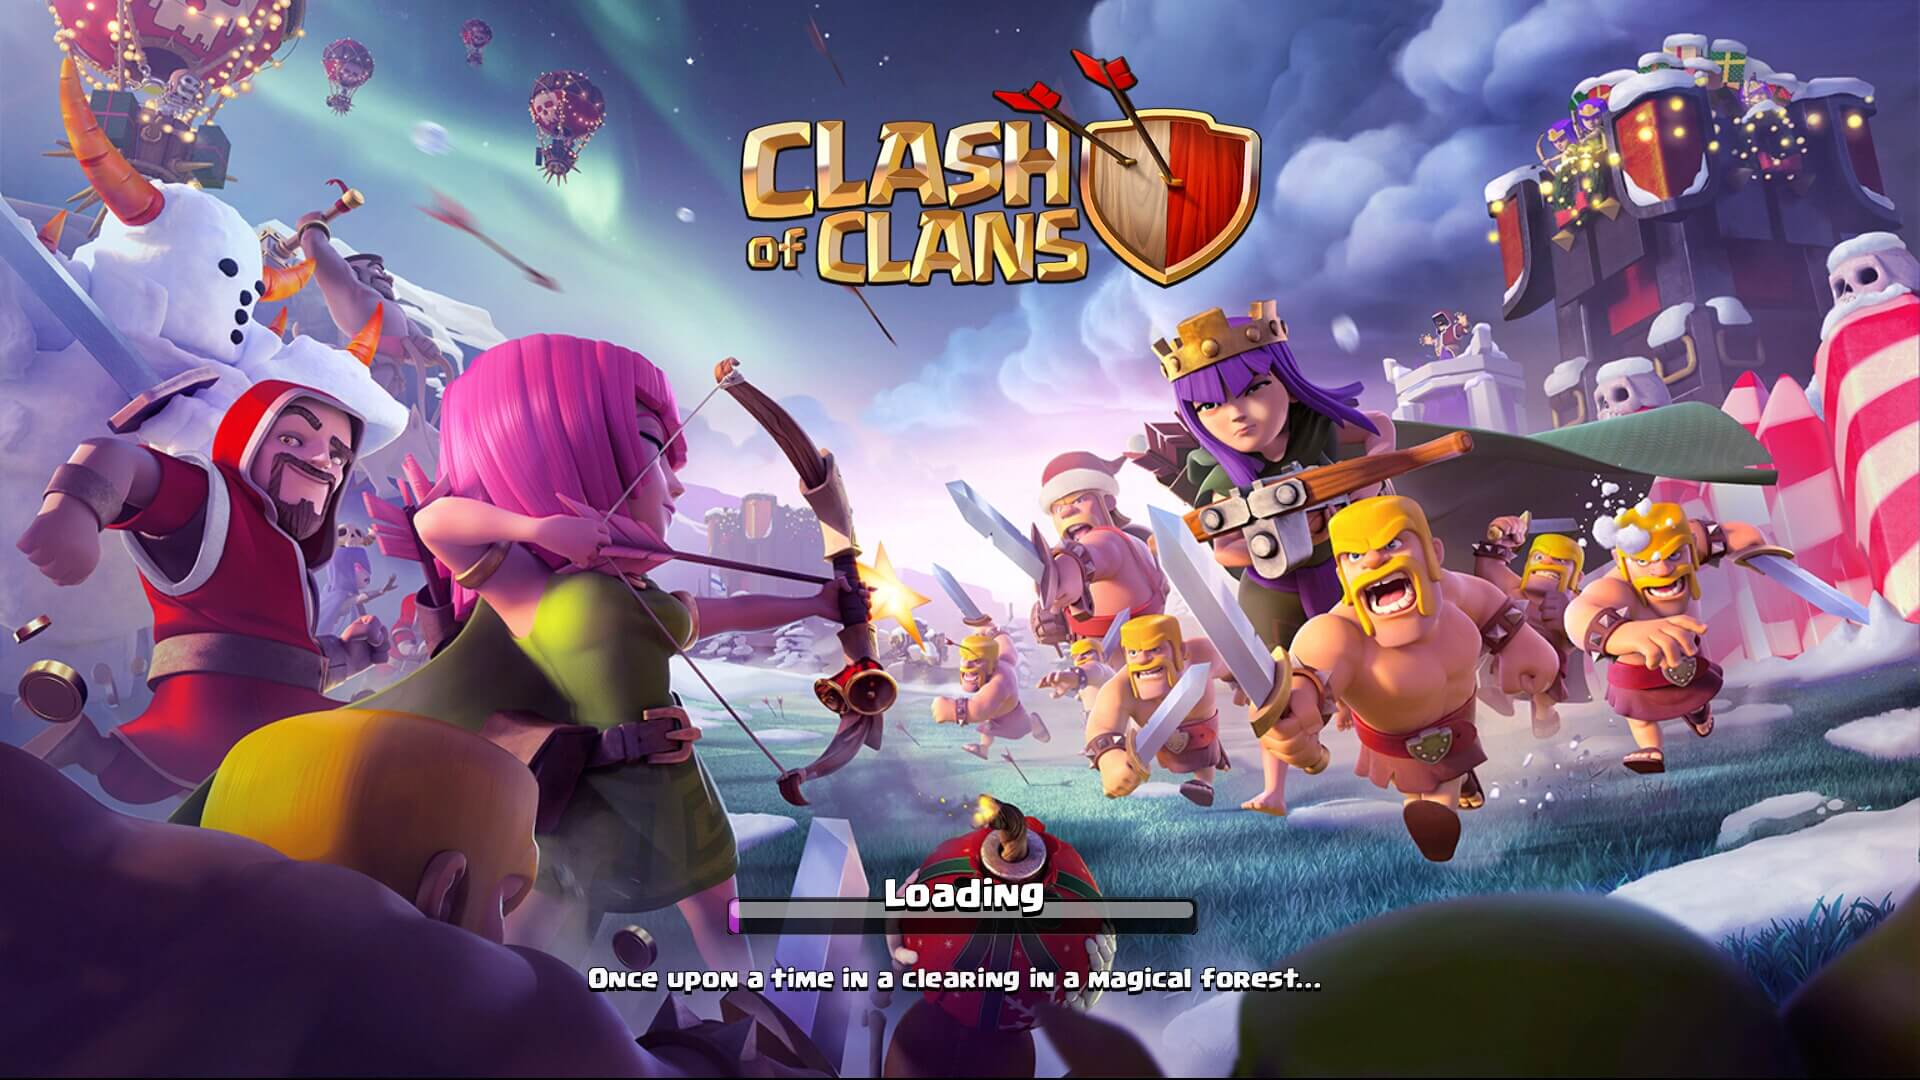 Clash of Clans Loading Screen Wallpaper